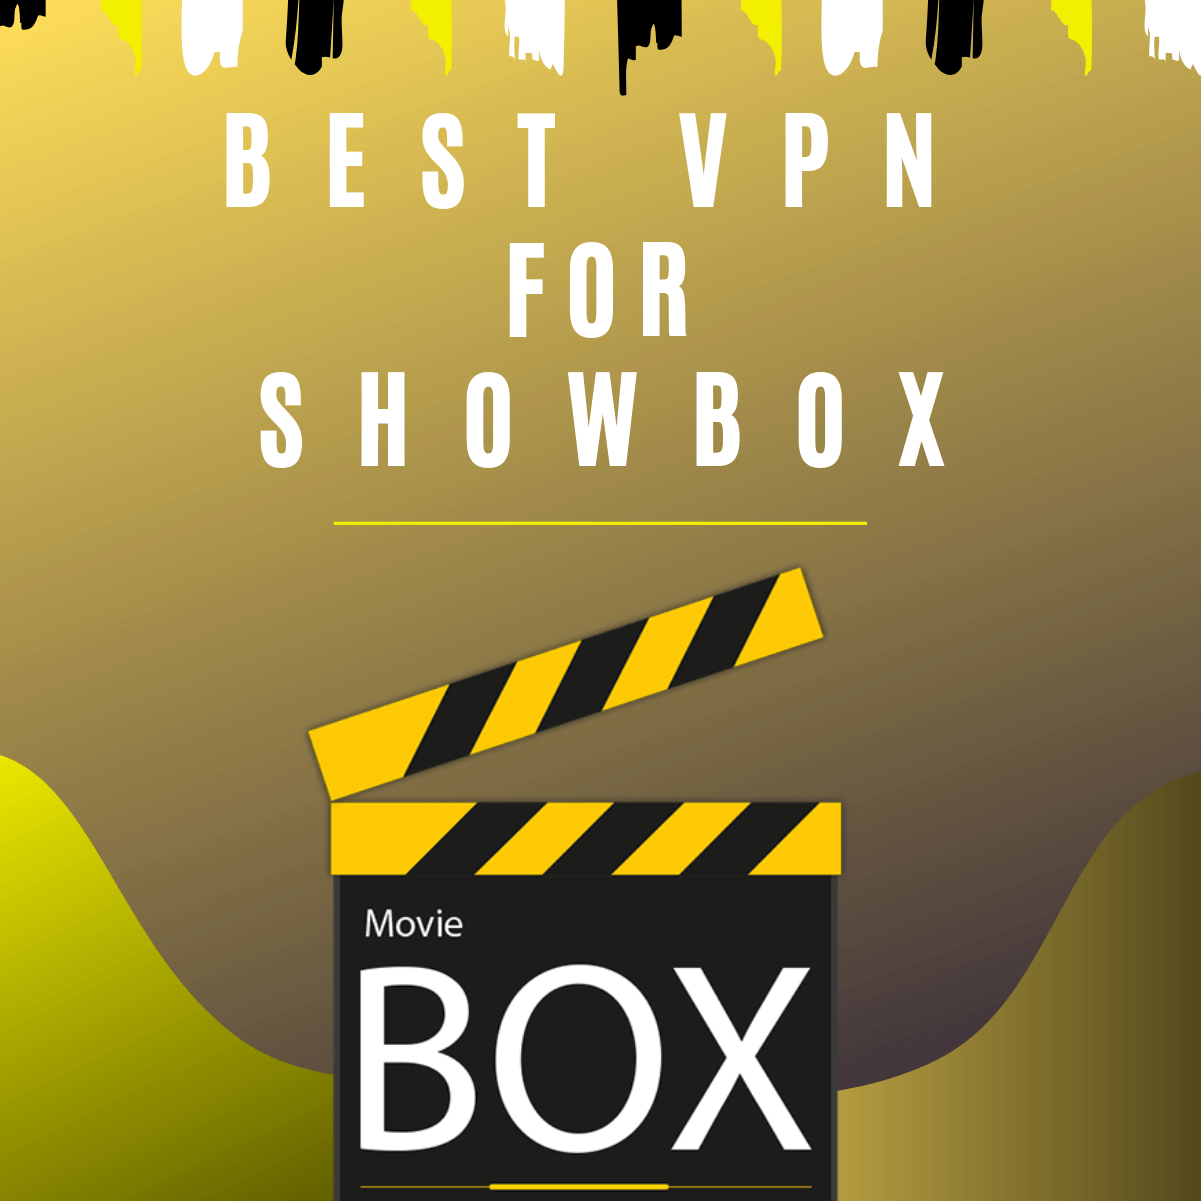 Best VPN for Showbox in 2019 - Explore Unlimited Entertainment For Free